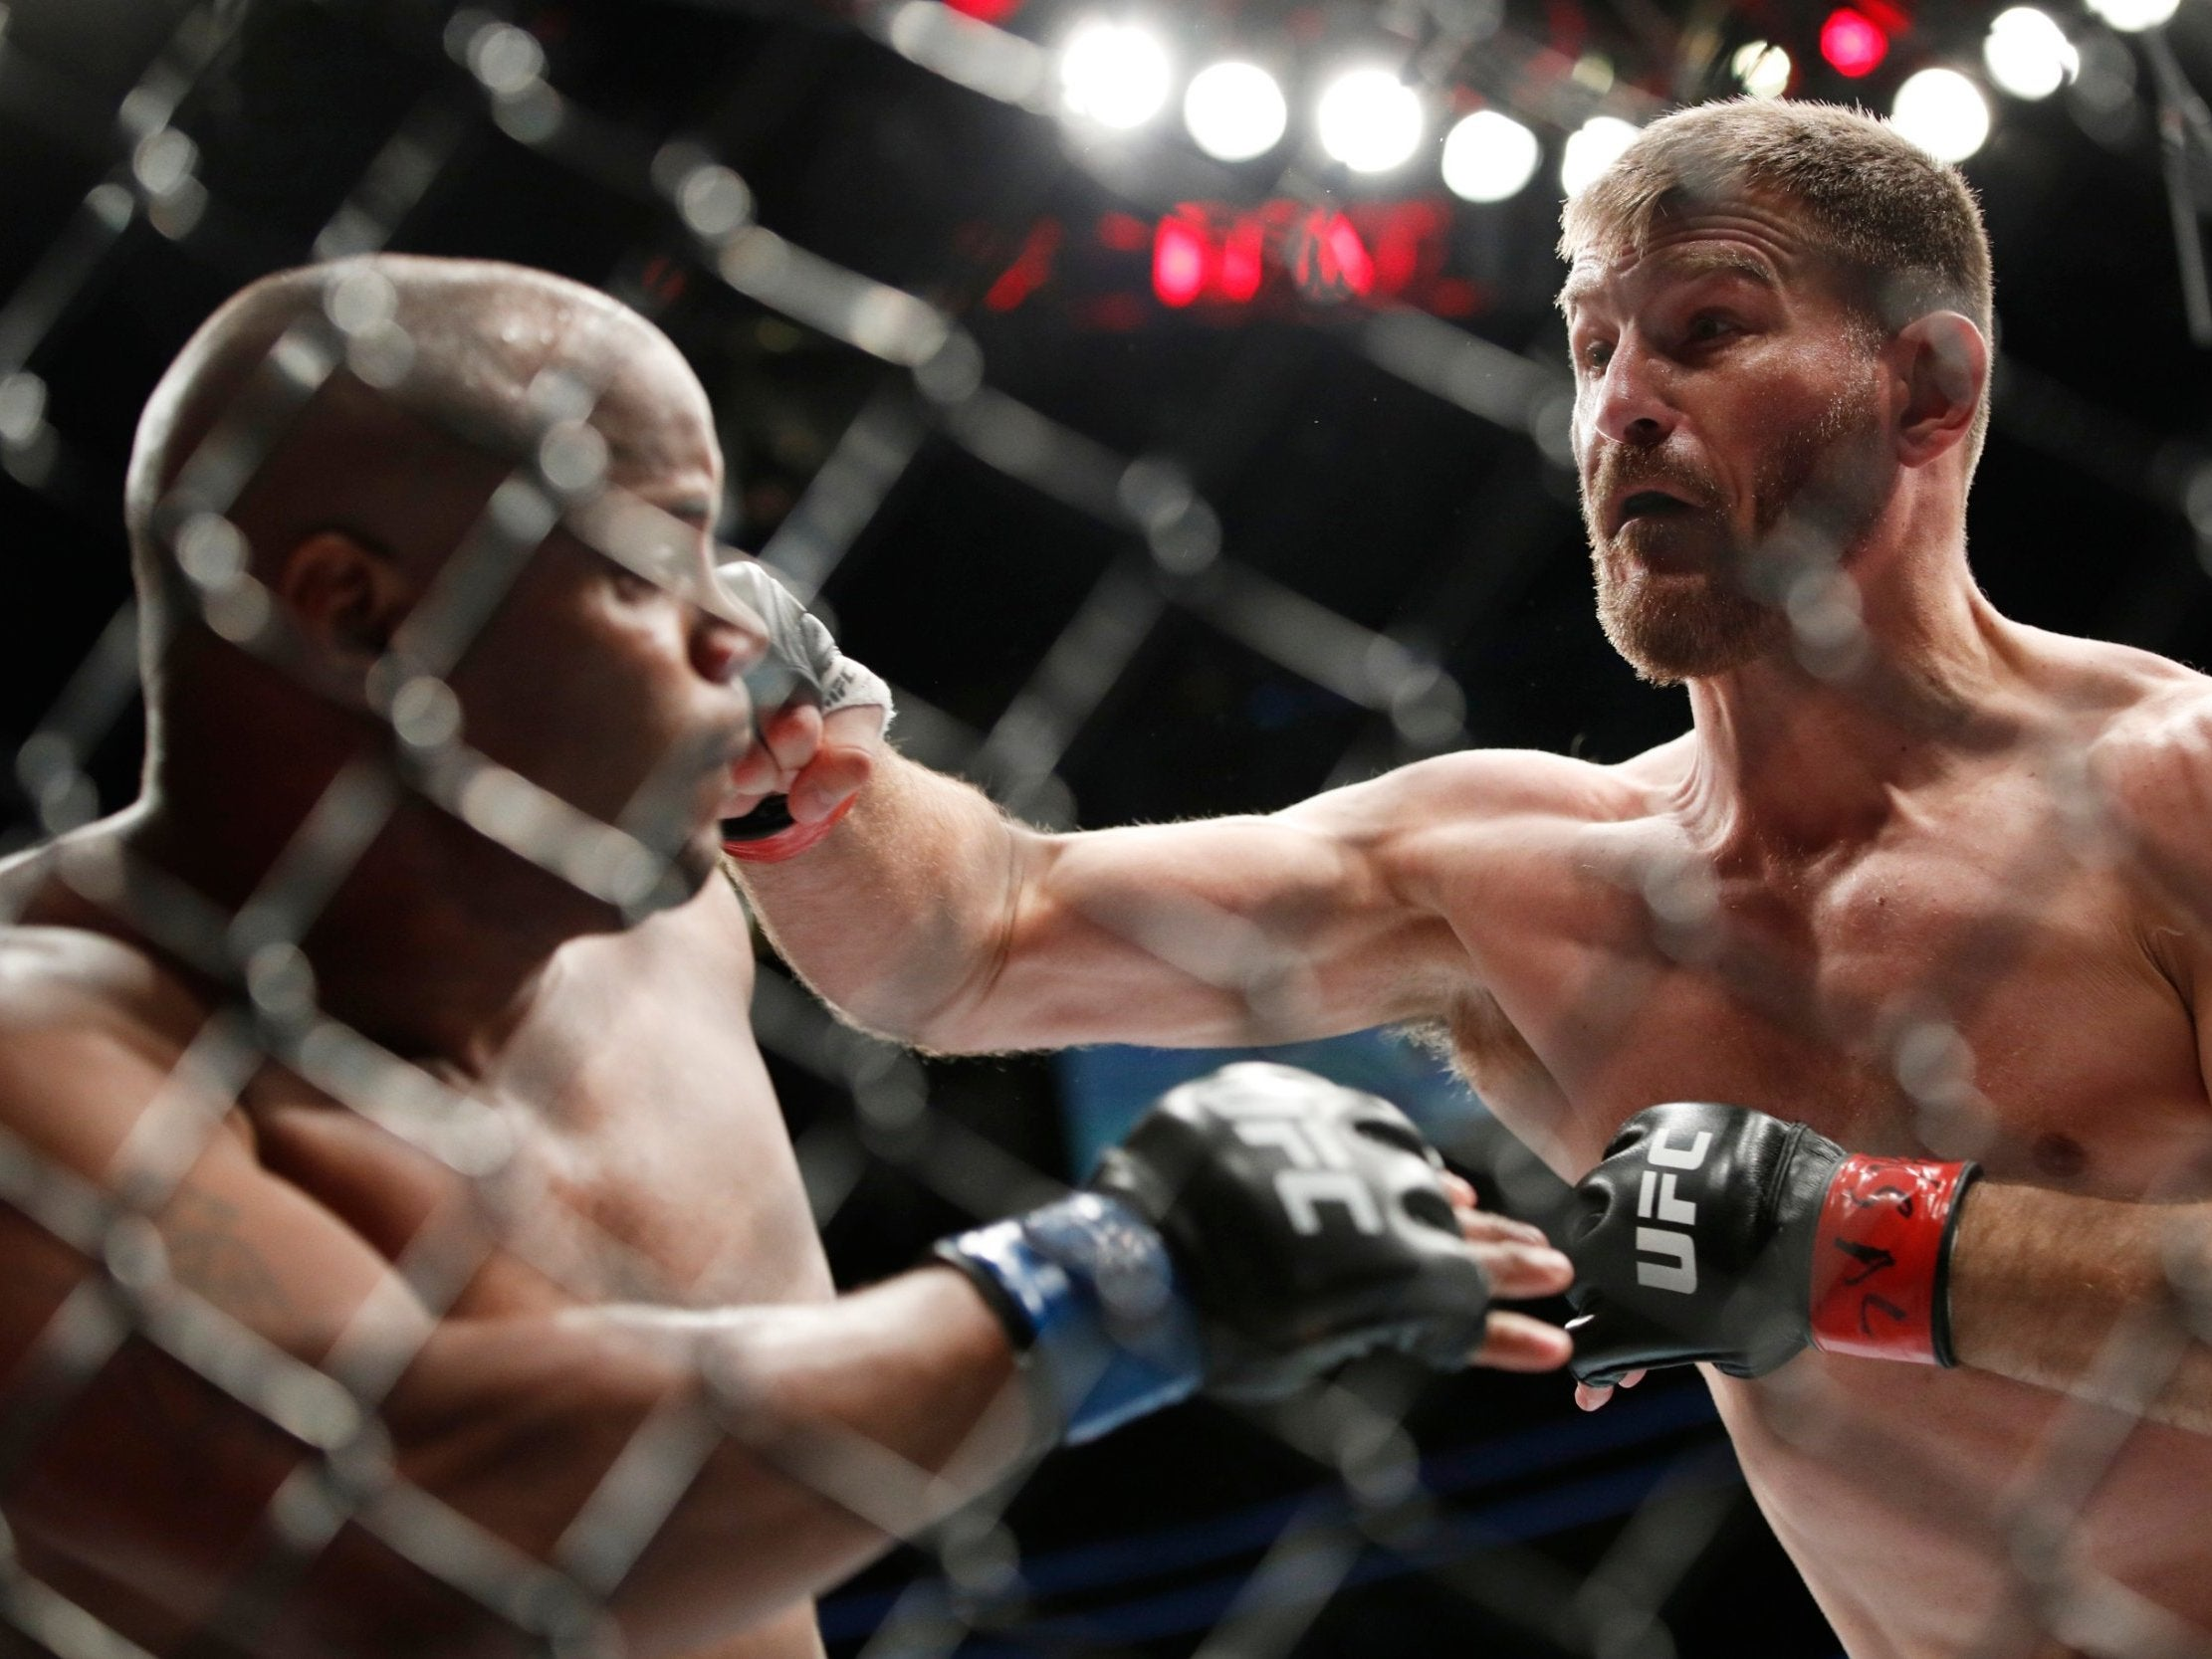 How to watch Miocic vs Cormier at UFC 252 online and on TV